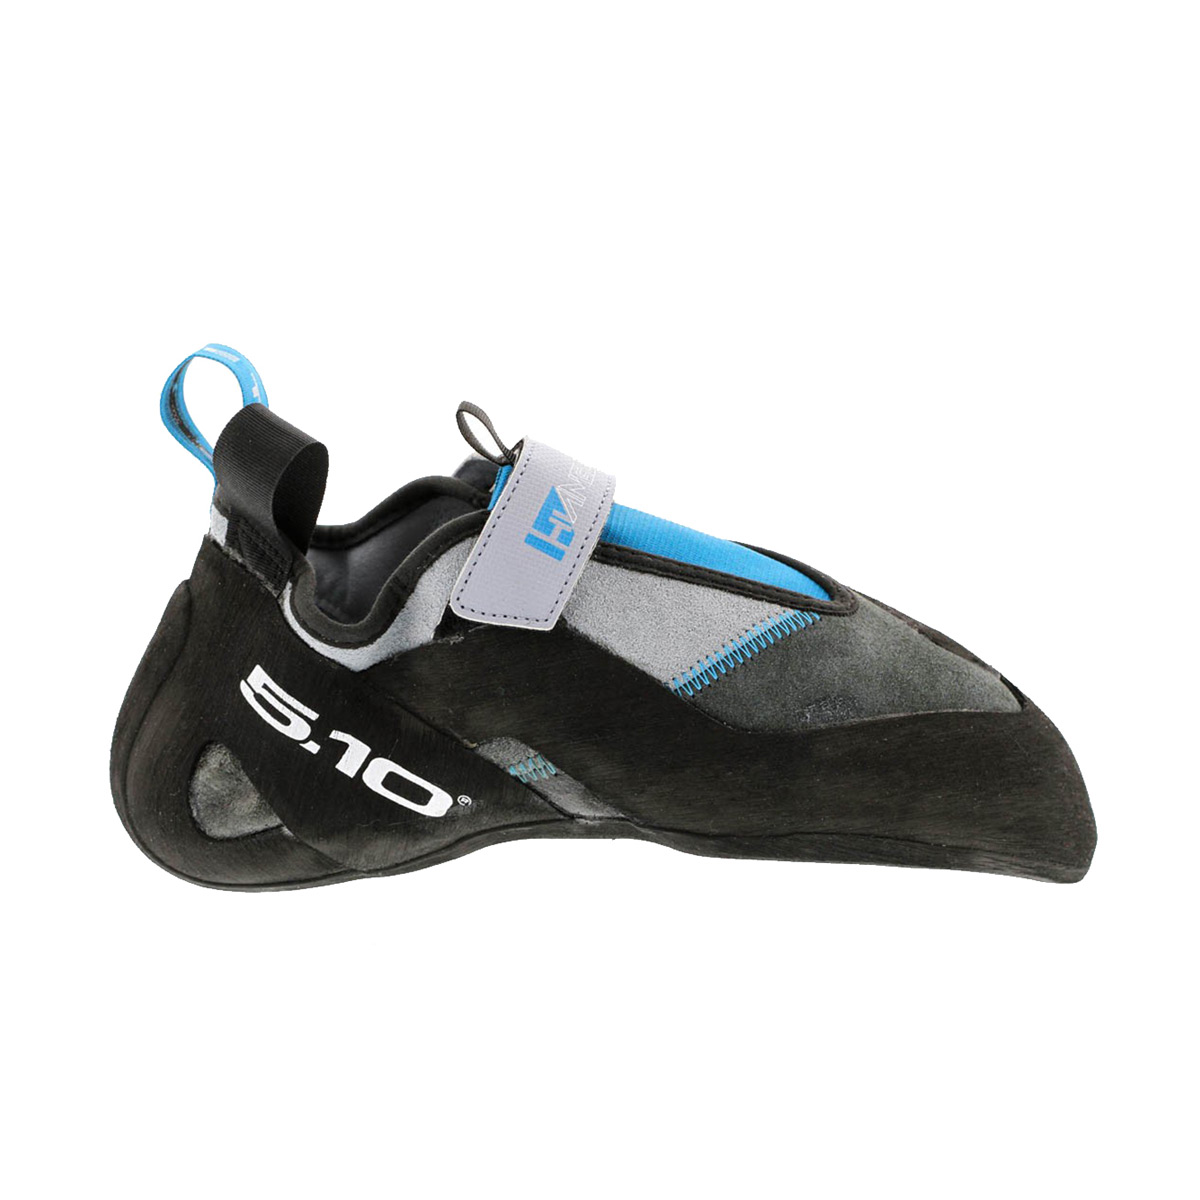 low price latest style beautiful and charming Hiangle Climbing Shoe